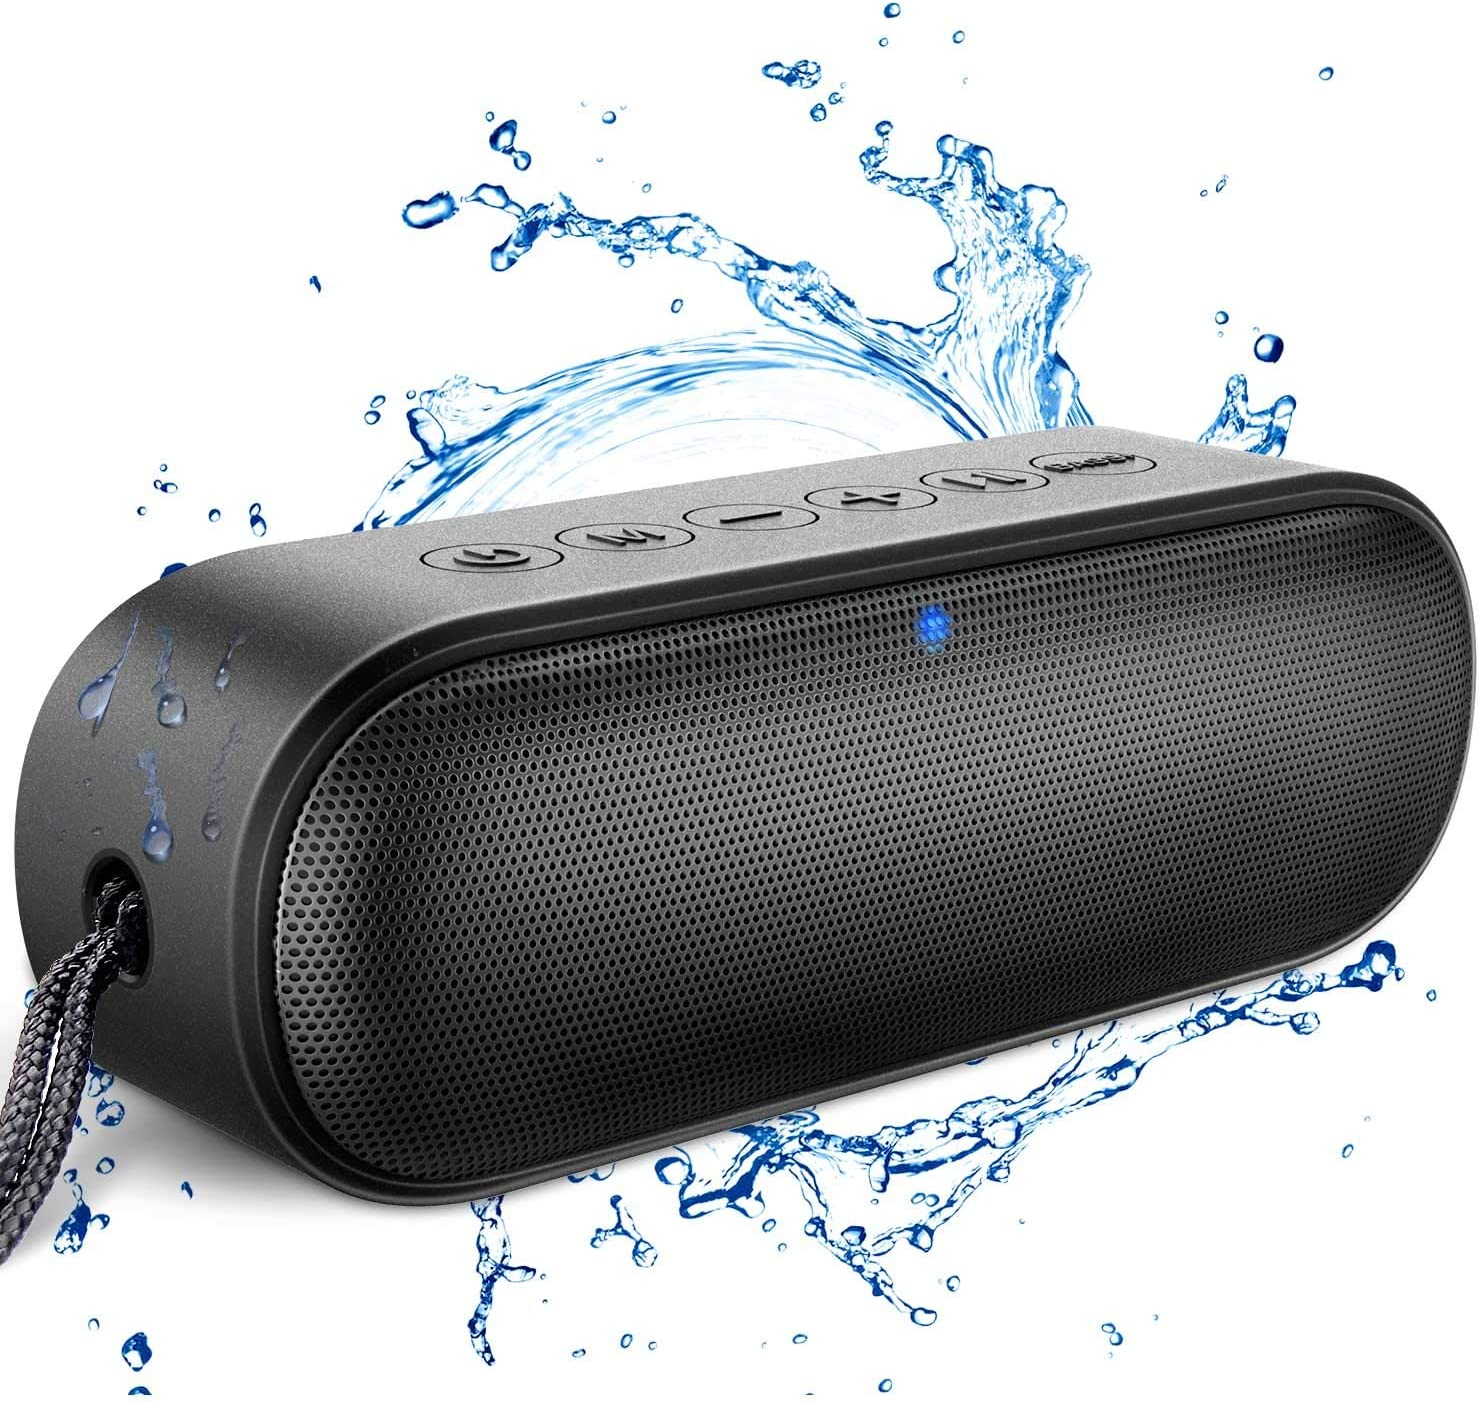 Amazon Com Kunodi A15 Portable Bluetooth Speaker V5 0 Wireless Shower Speaker Ipx7 Outdoor Waterproof With 12w Hd Sound Exceptional Bass Mode Built In Mic 18 Hour Playtime For Iphone Samsung And More Home